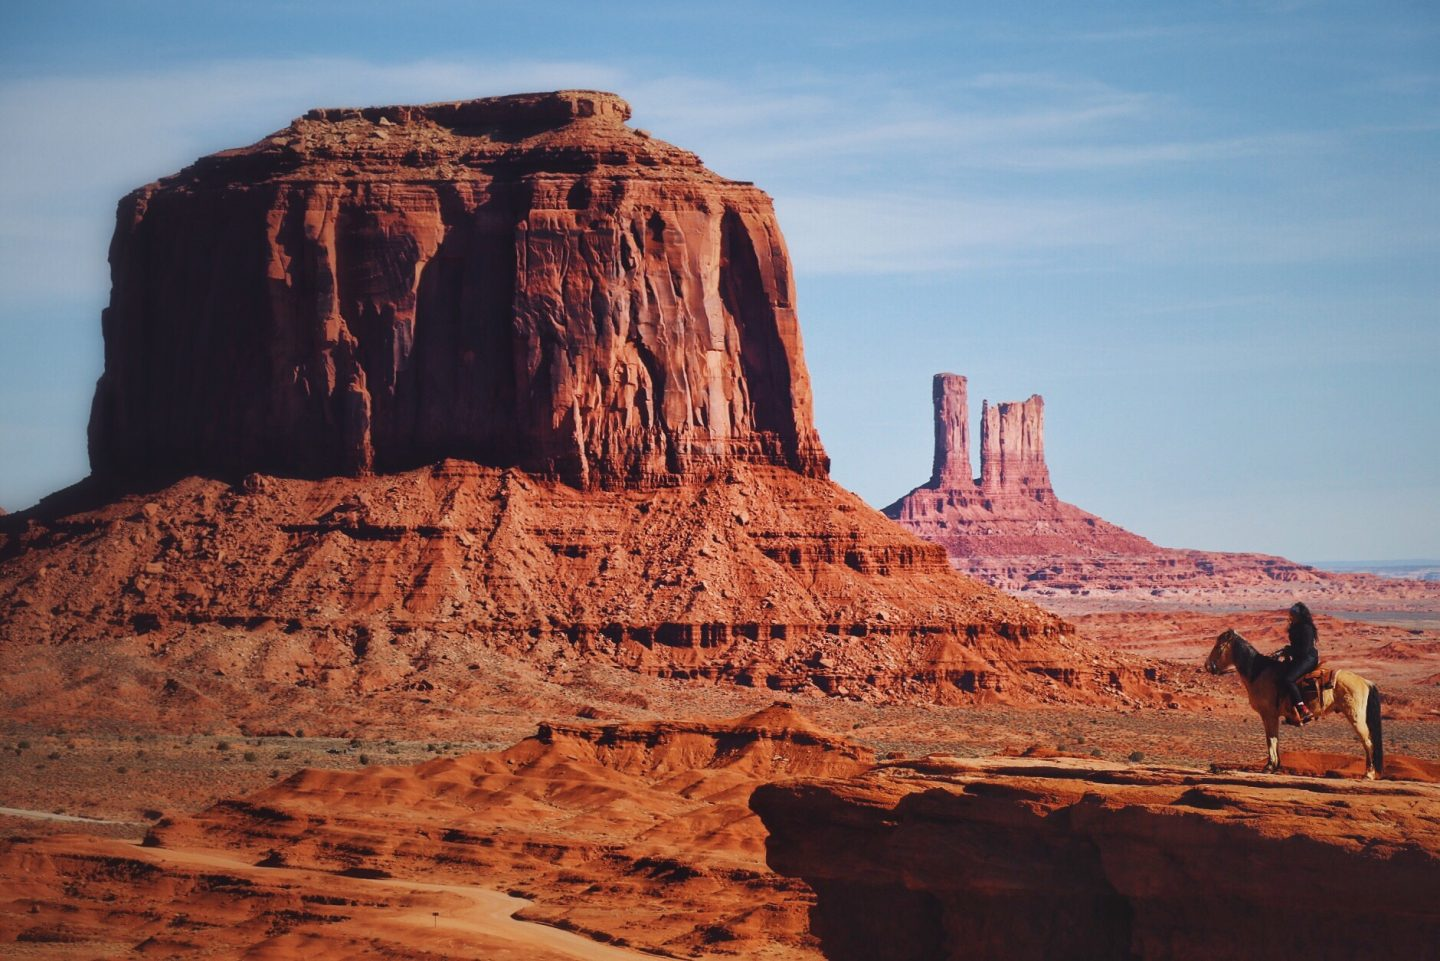 The Road Trip to Monument Valley